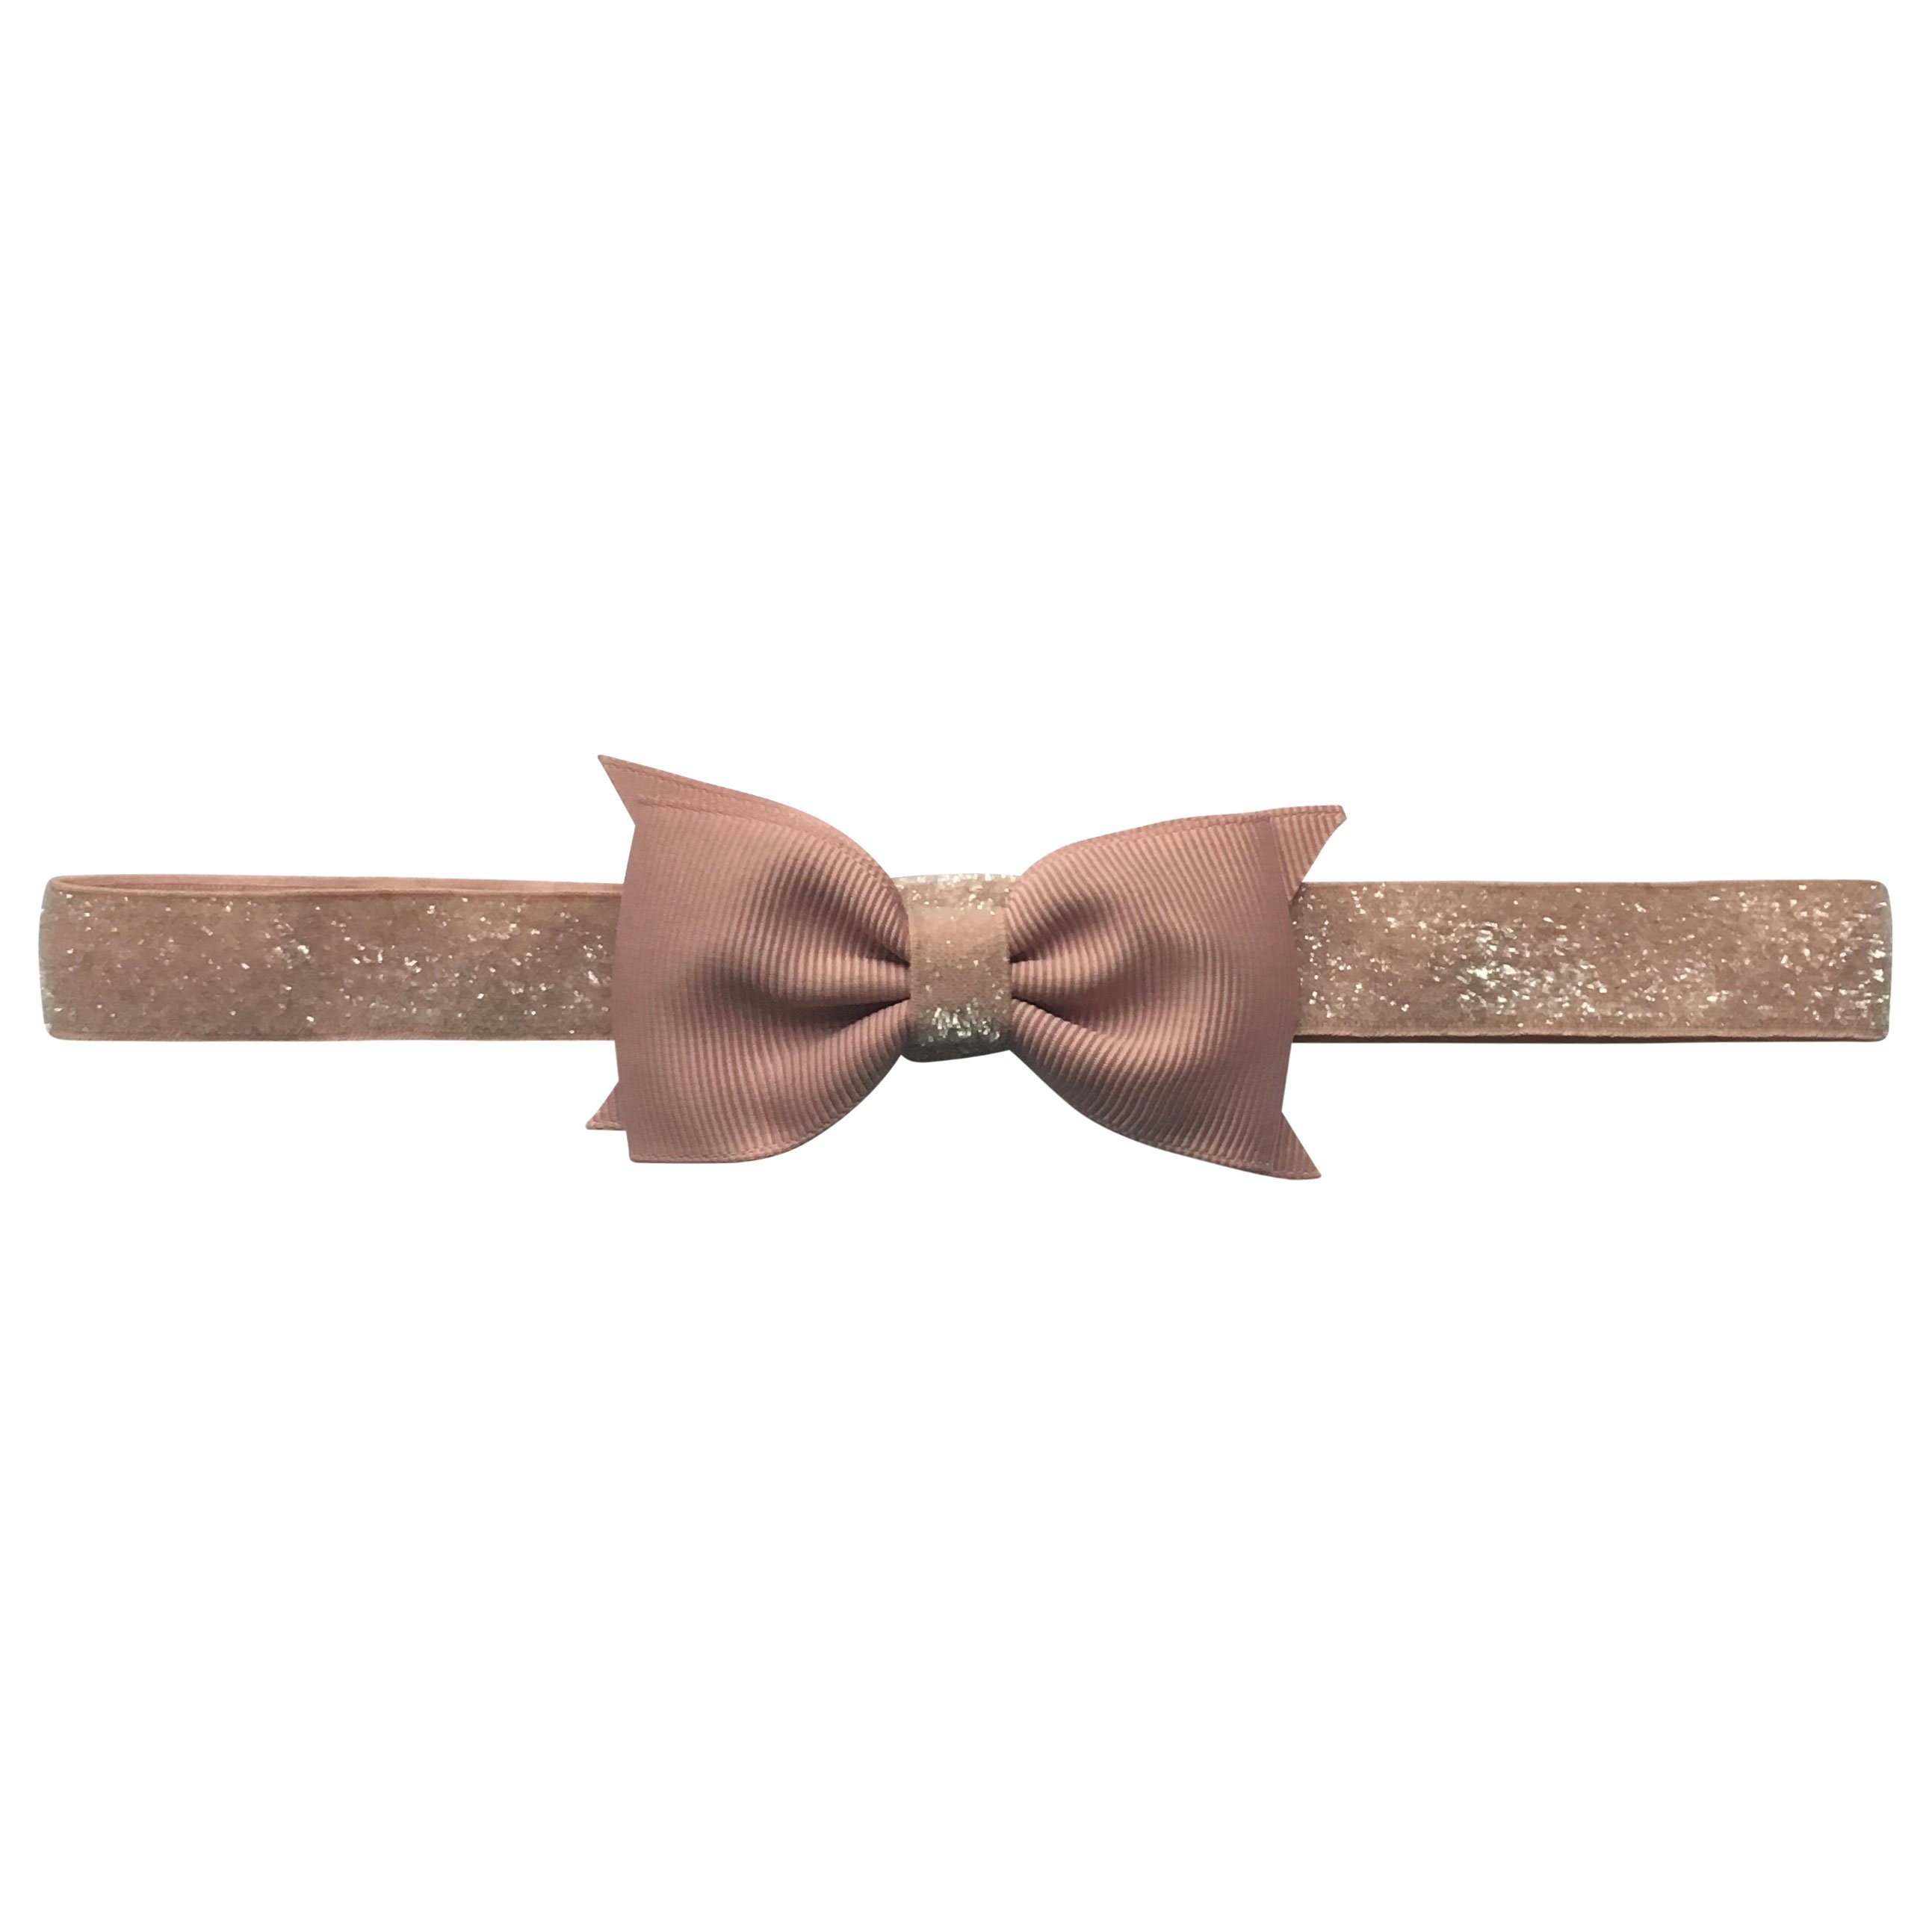 Image of   Double Bowtie Milledeux bow - elastic hairband - antique mauve colored glitter